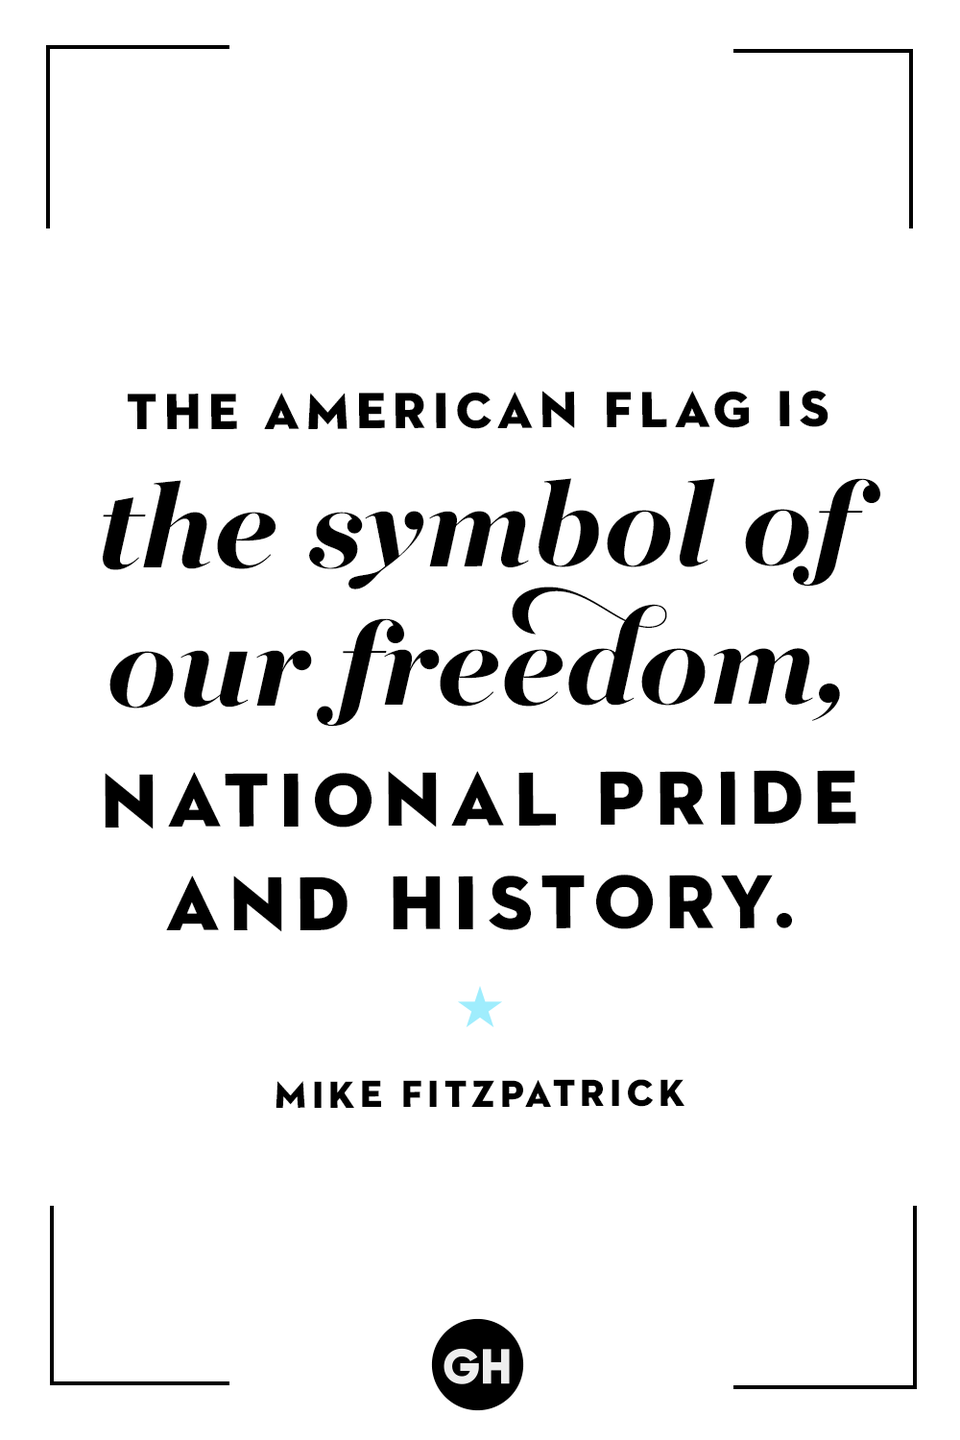 <p>The American flag is the symbol of our freedom, national pride and history.</p>